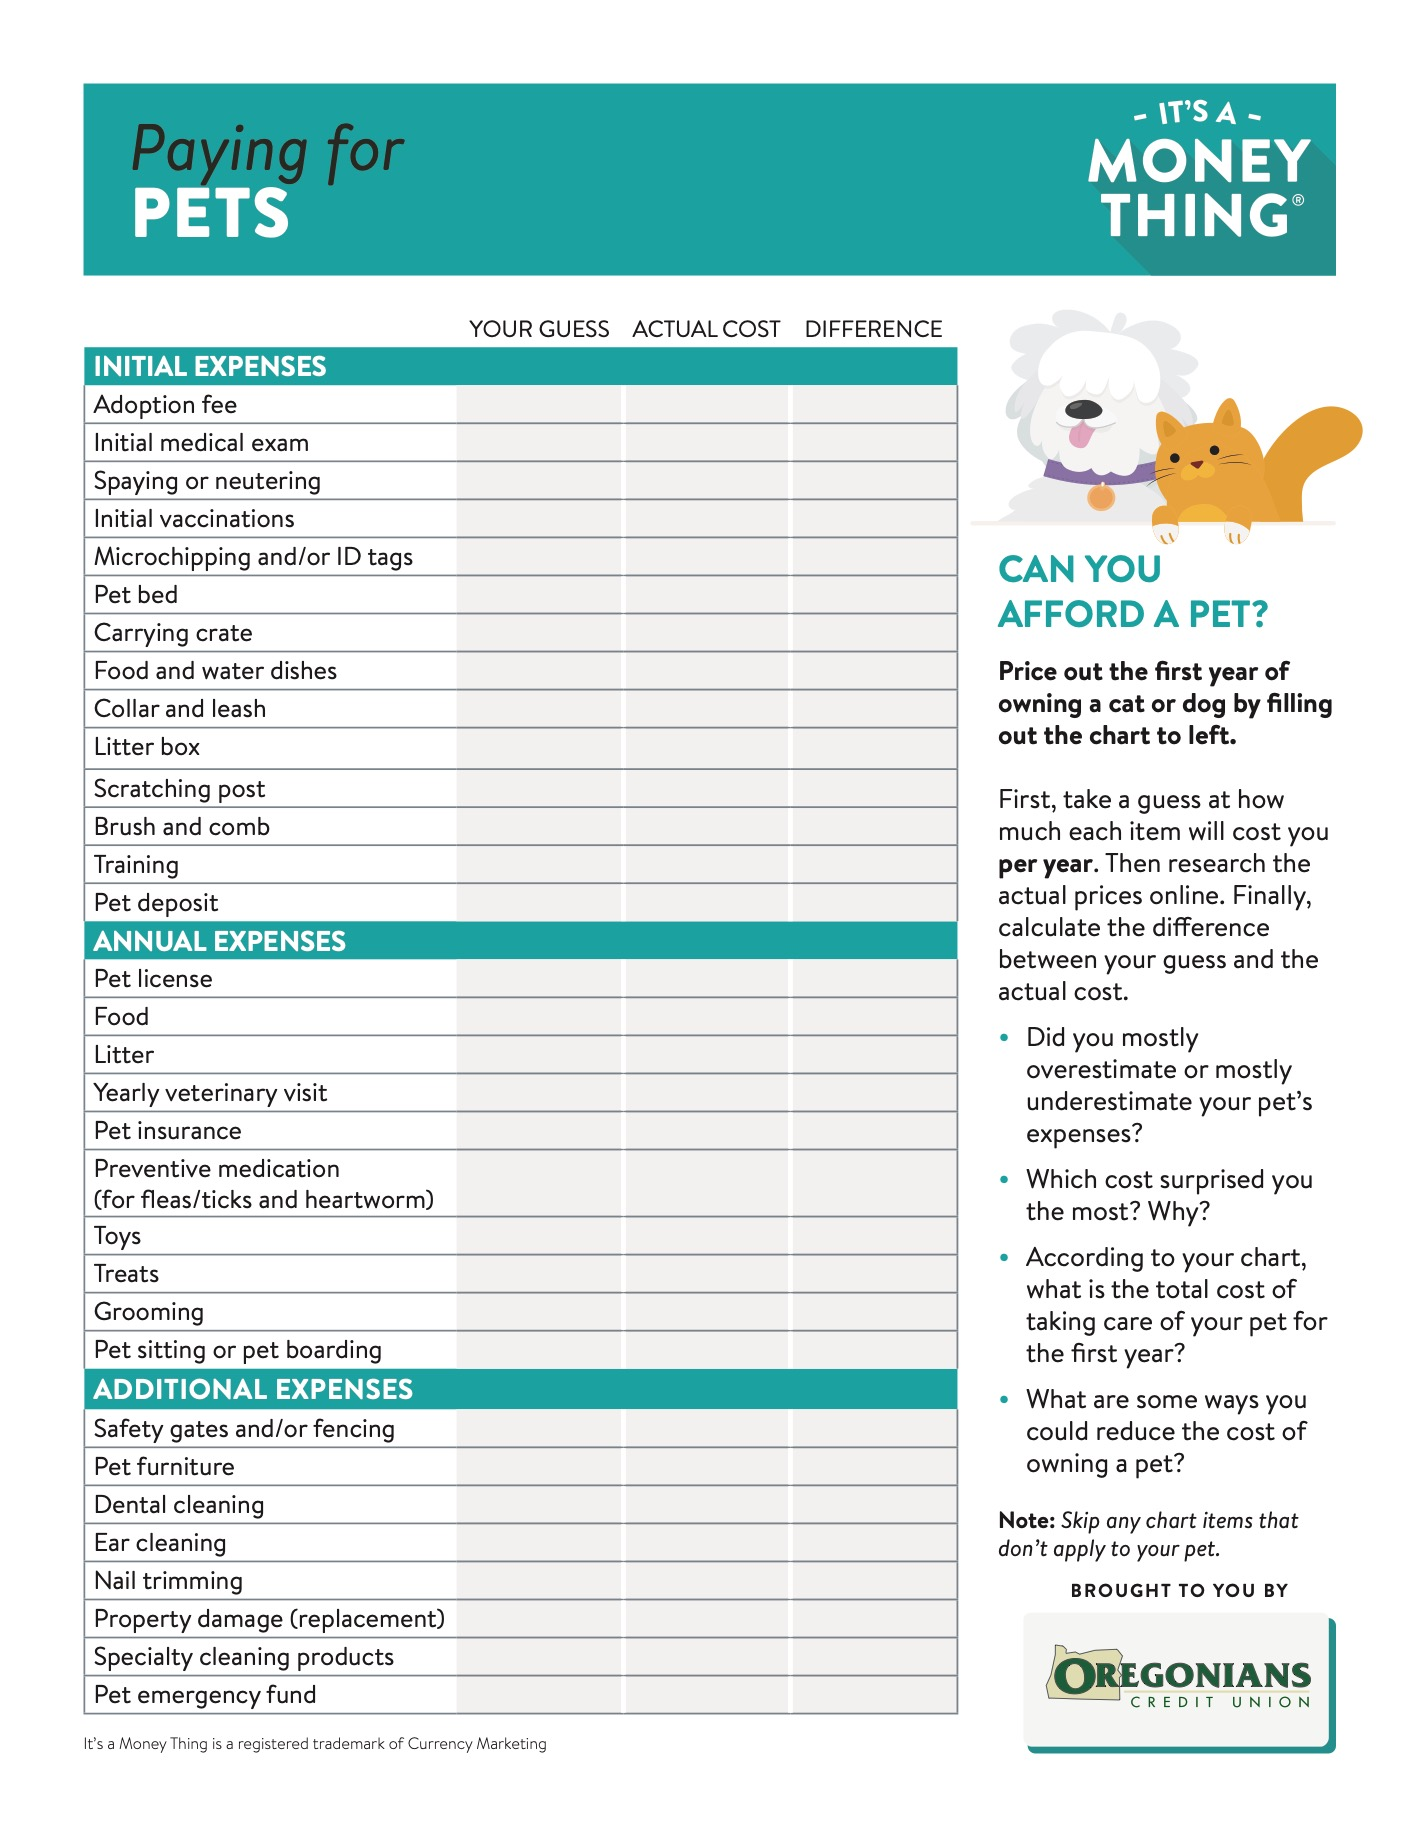 Paying for pets - Handout